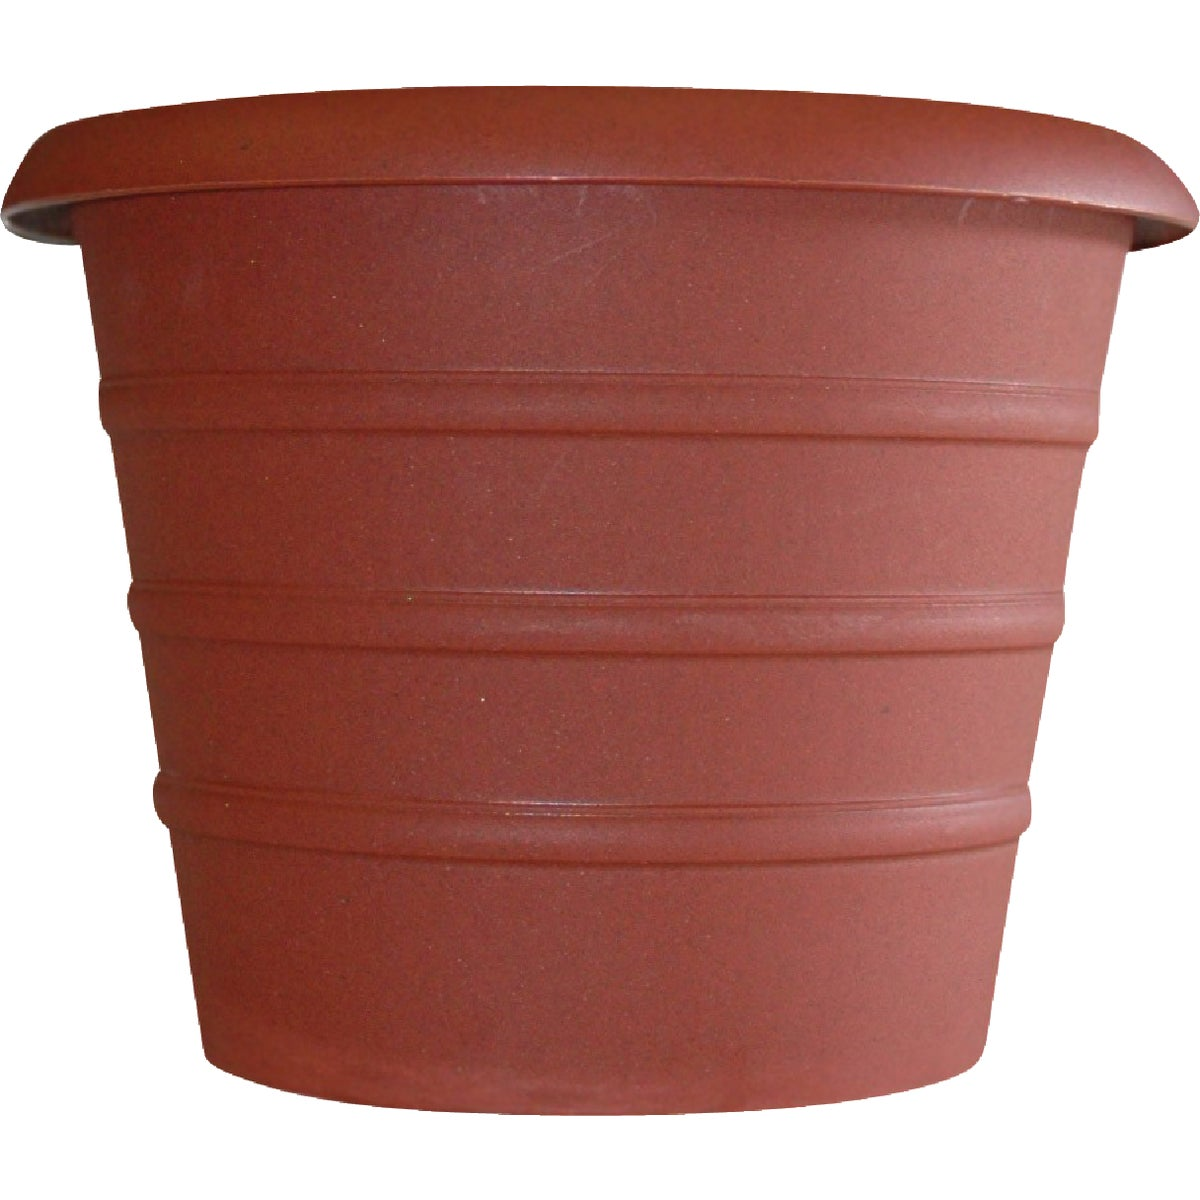 "12""T COTTA MARINA POT - MSA12001E07 by Myers Industries Inc"